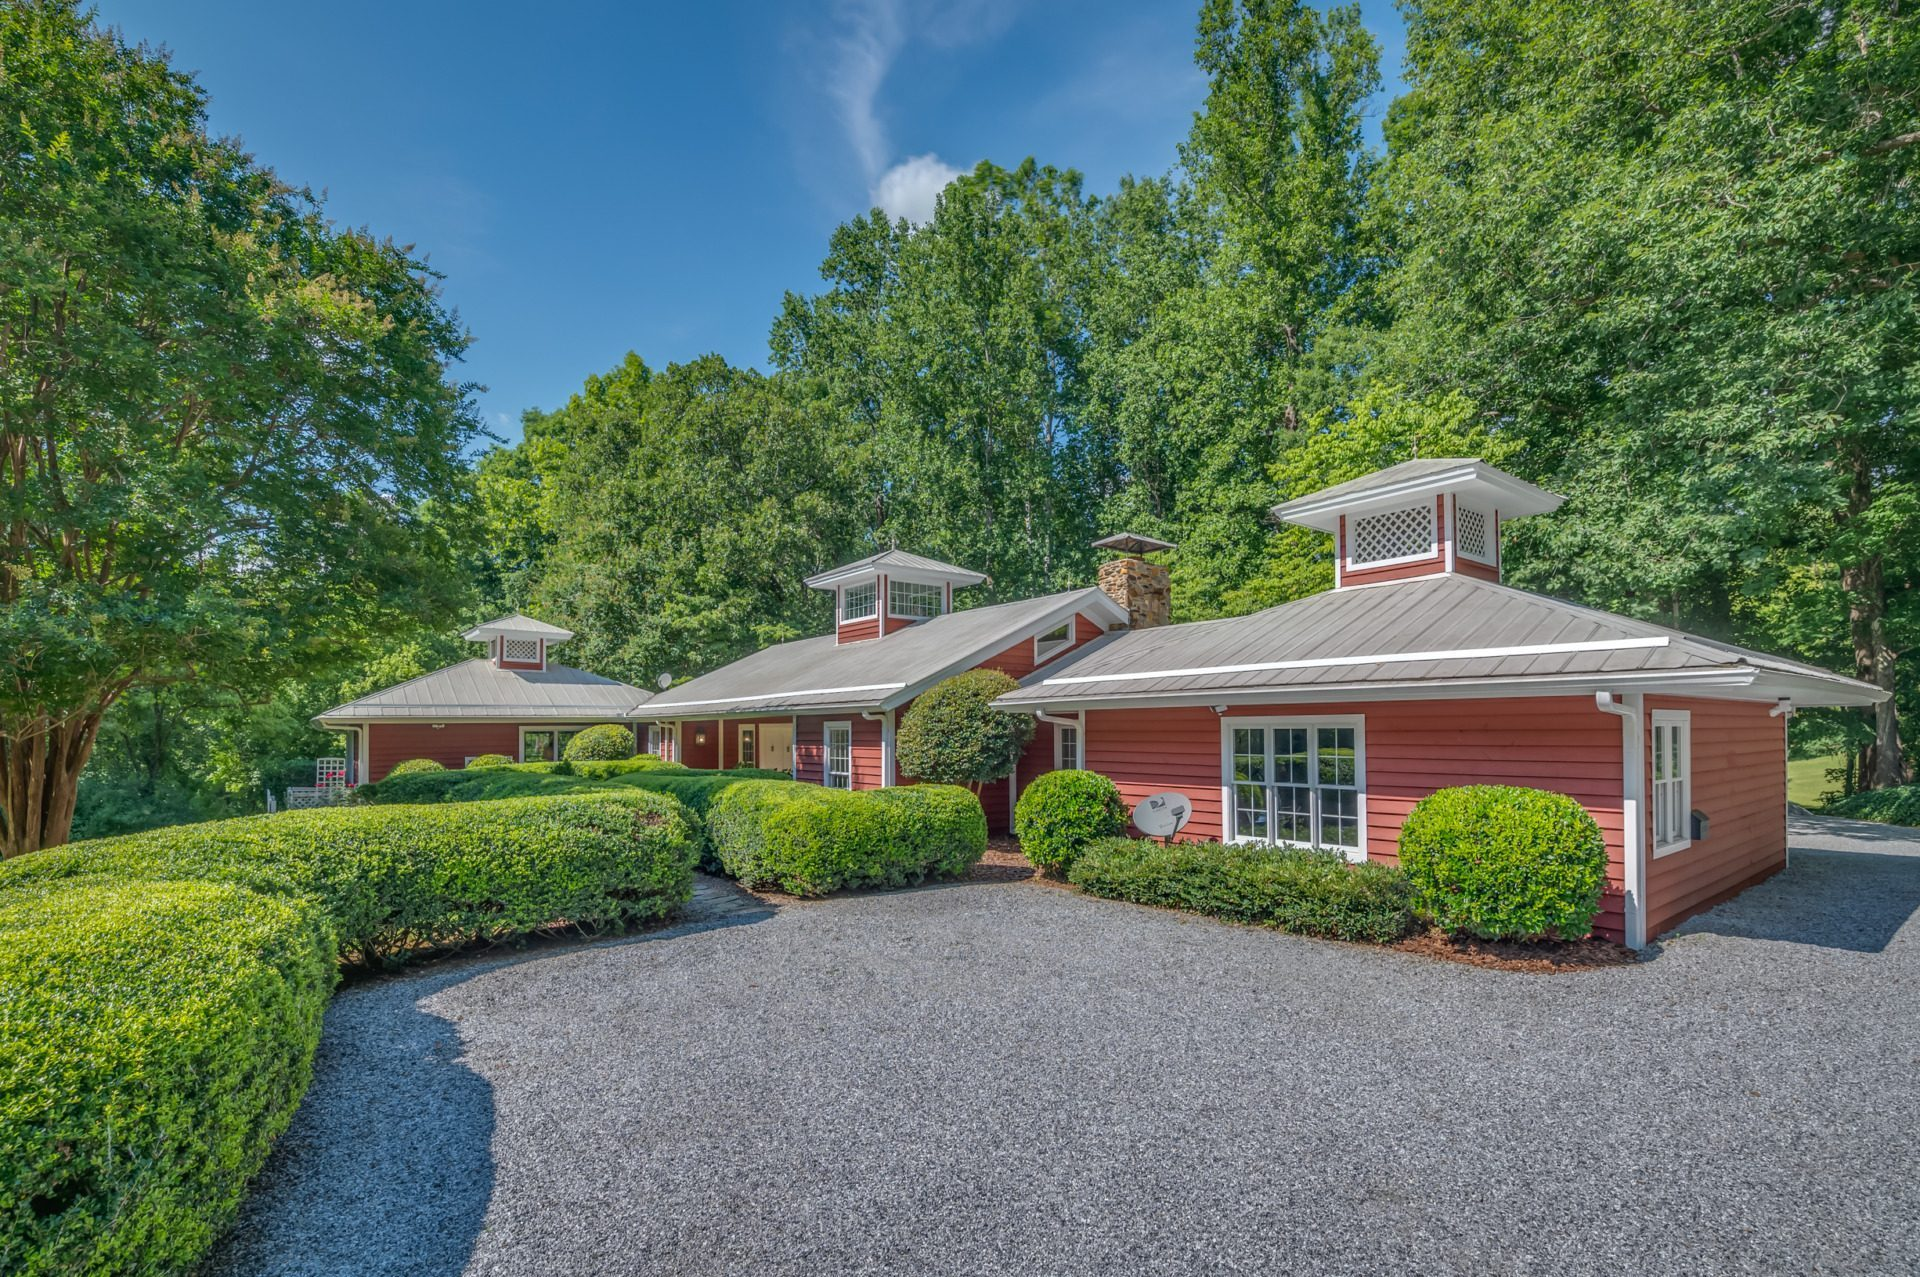 Under Contract: Old foaling barn, a Landrum gem